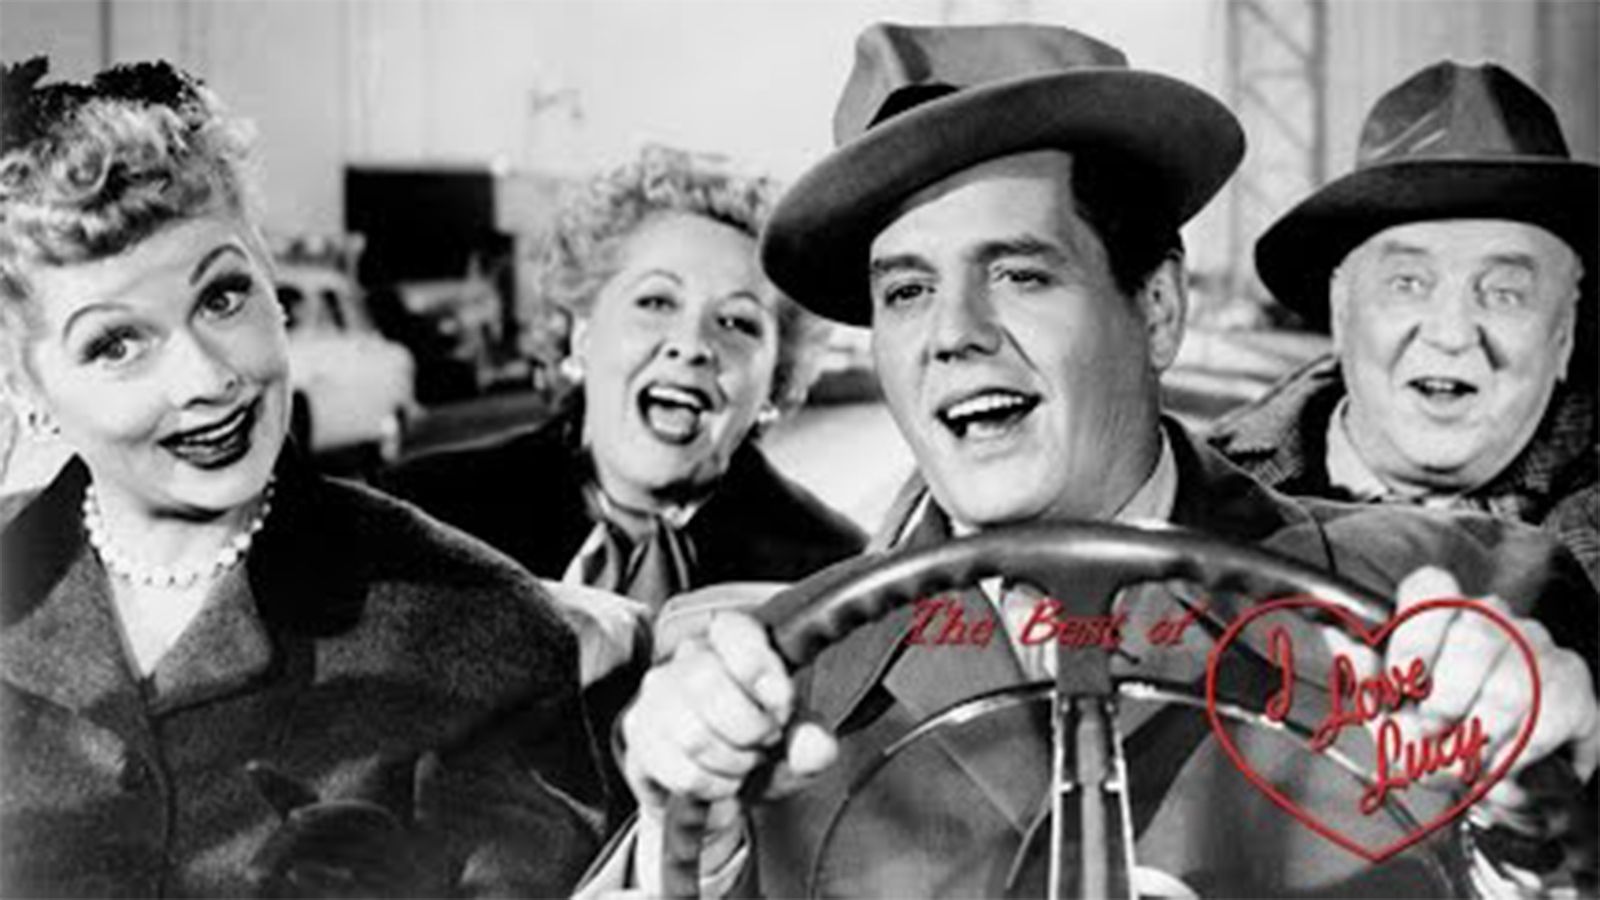 Desi Arnaz: Ricky Ricardo and a TV Pioneer Too